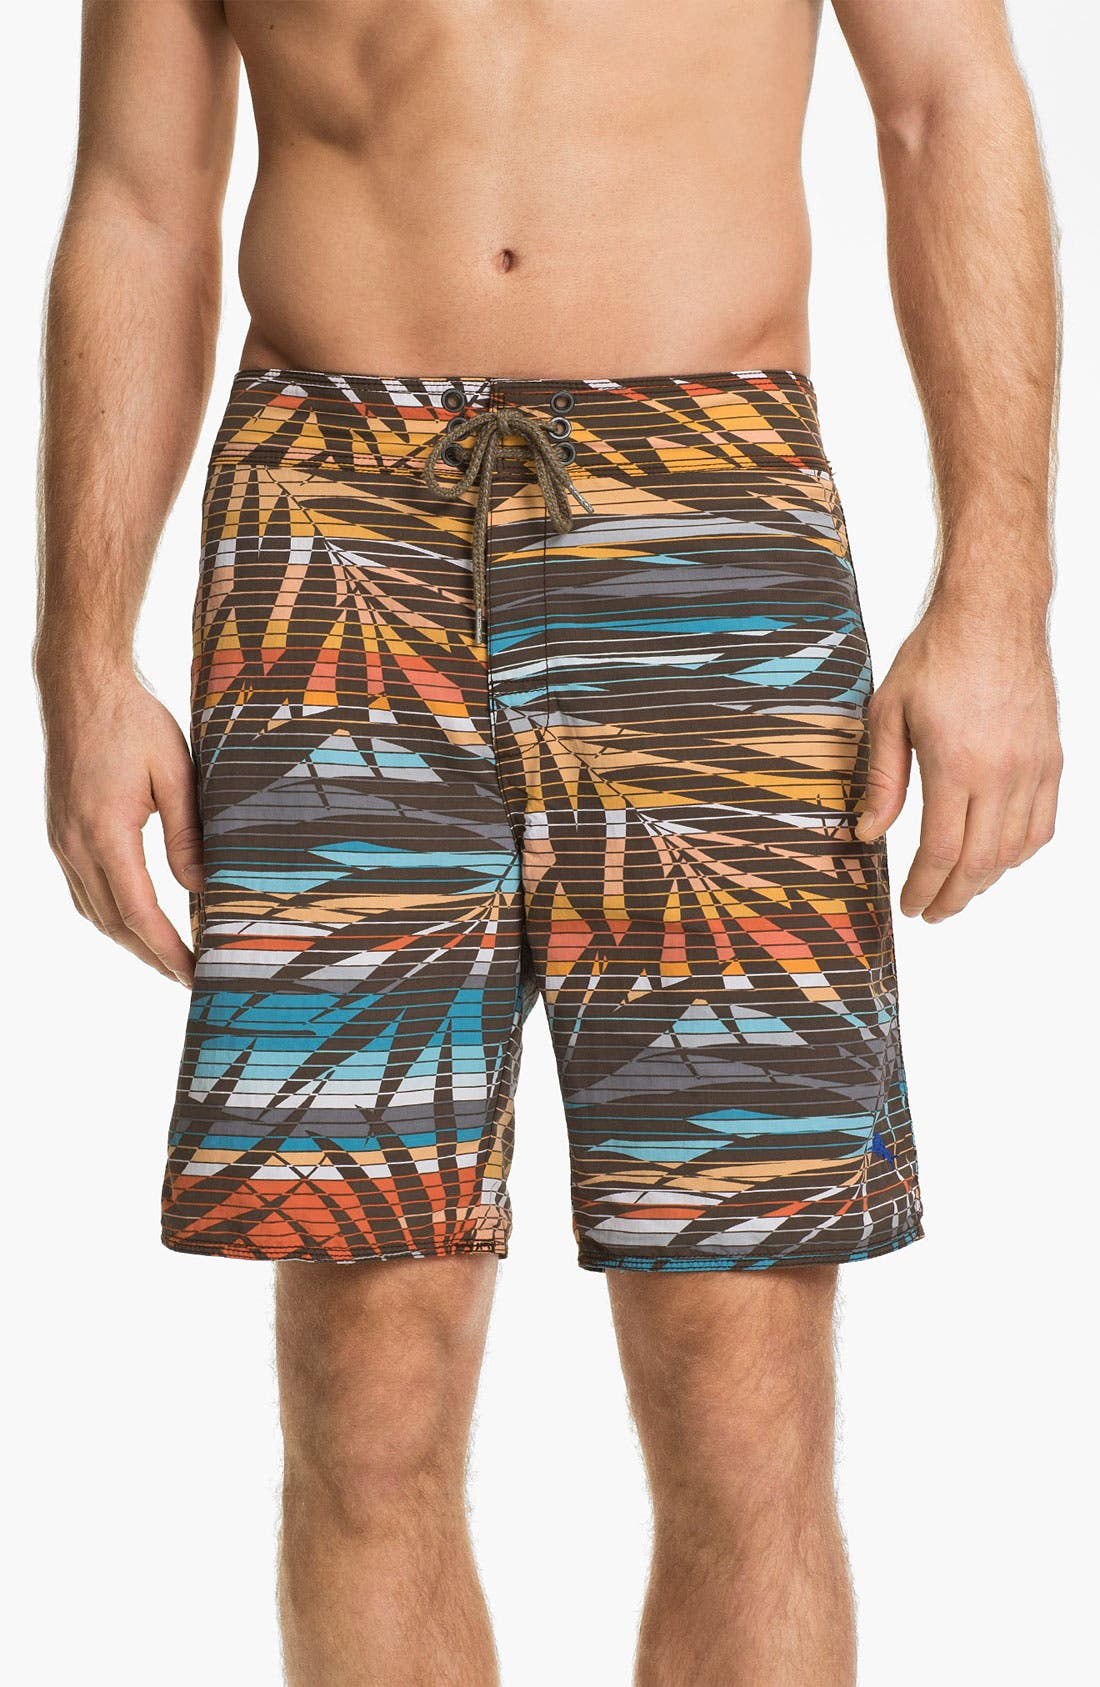 Alternate Image 1 Selected - Tommy Bahama Relax 'Fern Baby Fern' Reversible Board Shorts (Online Only)